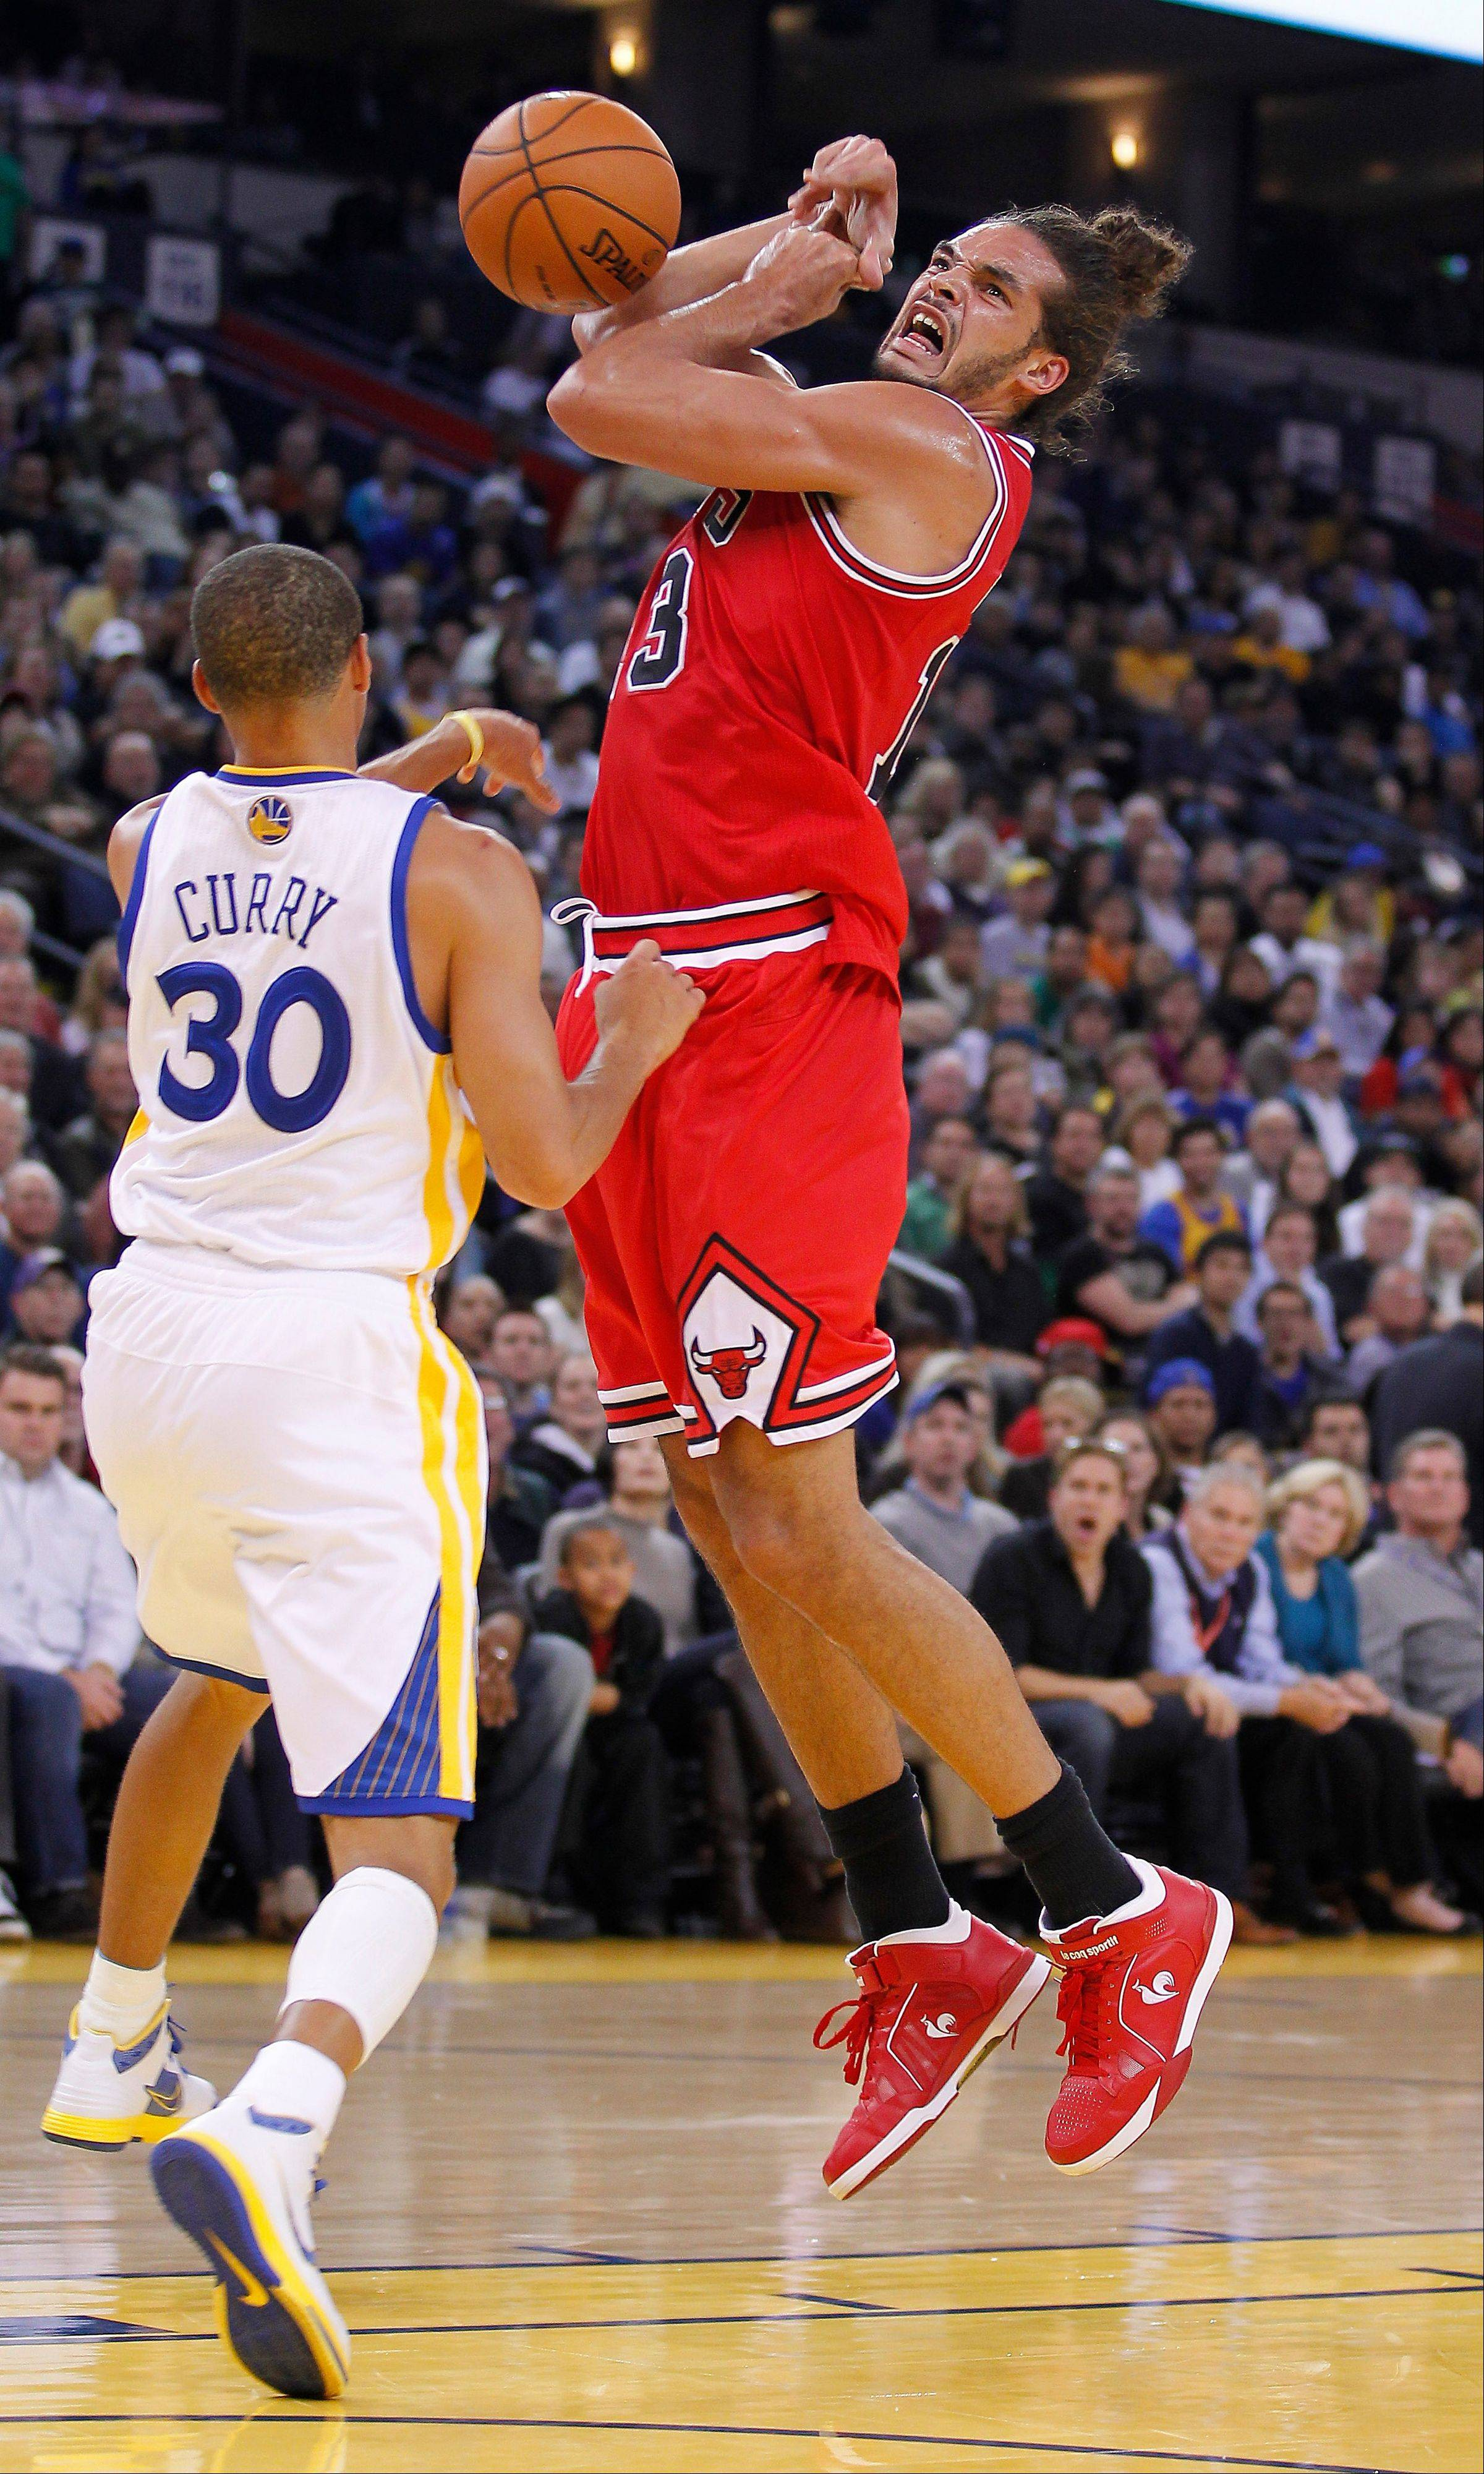 Chicago Bulls' Joakim Noah (13) has the ball stripped by Golden State Warriors' Stephen Curry (30) during the first half of Monday night's game.